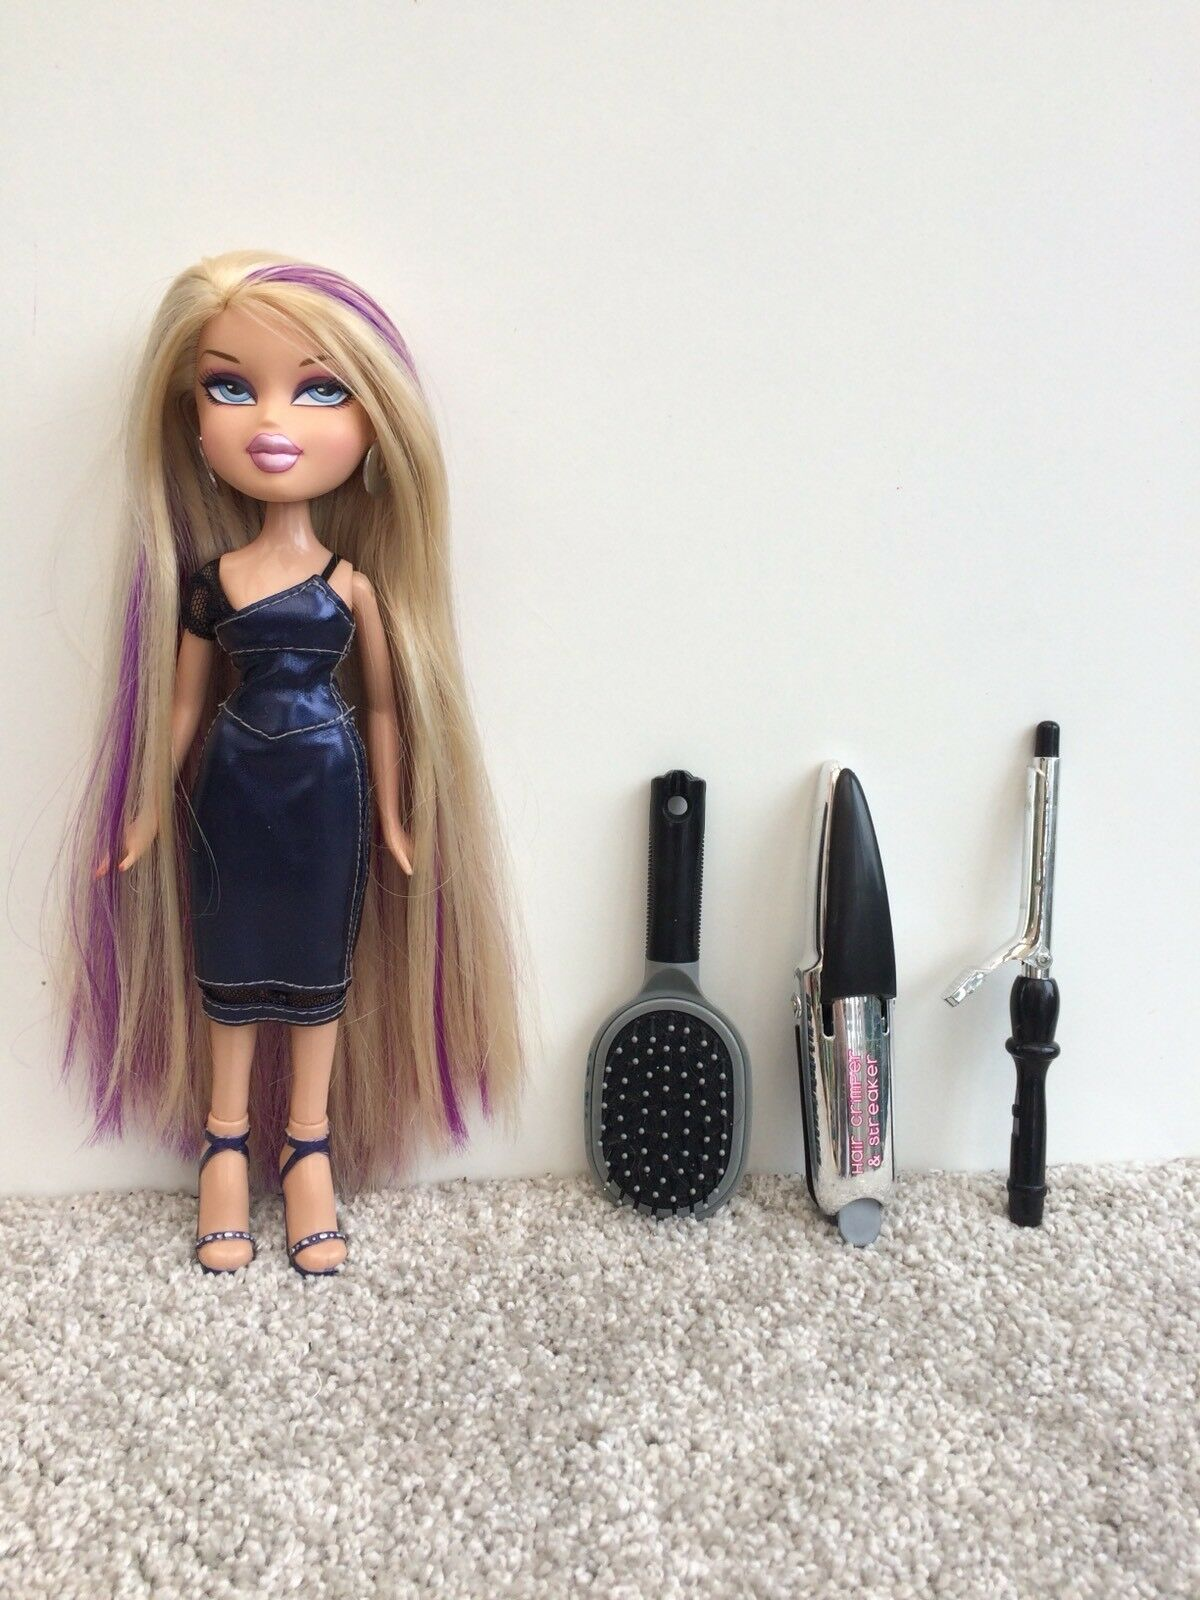 Bratz Doll Magic Hair Colour Cloe - Rare Rare Rare Mint 7c0f72